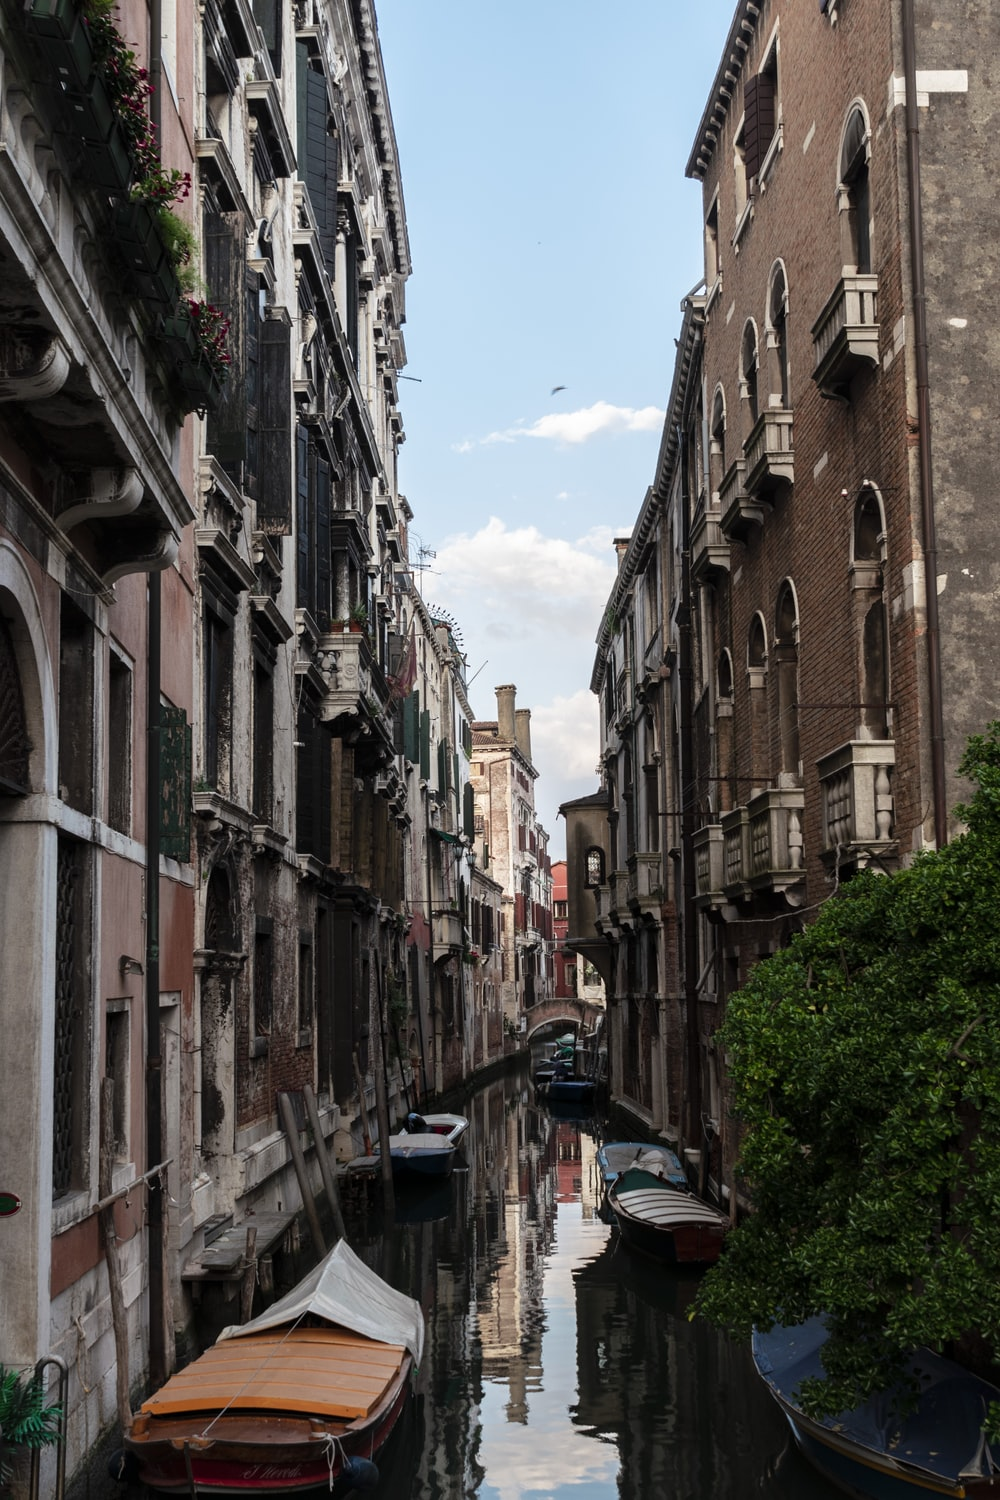 Venice Italy canal under blue and white sky during daytime